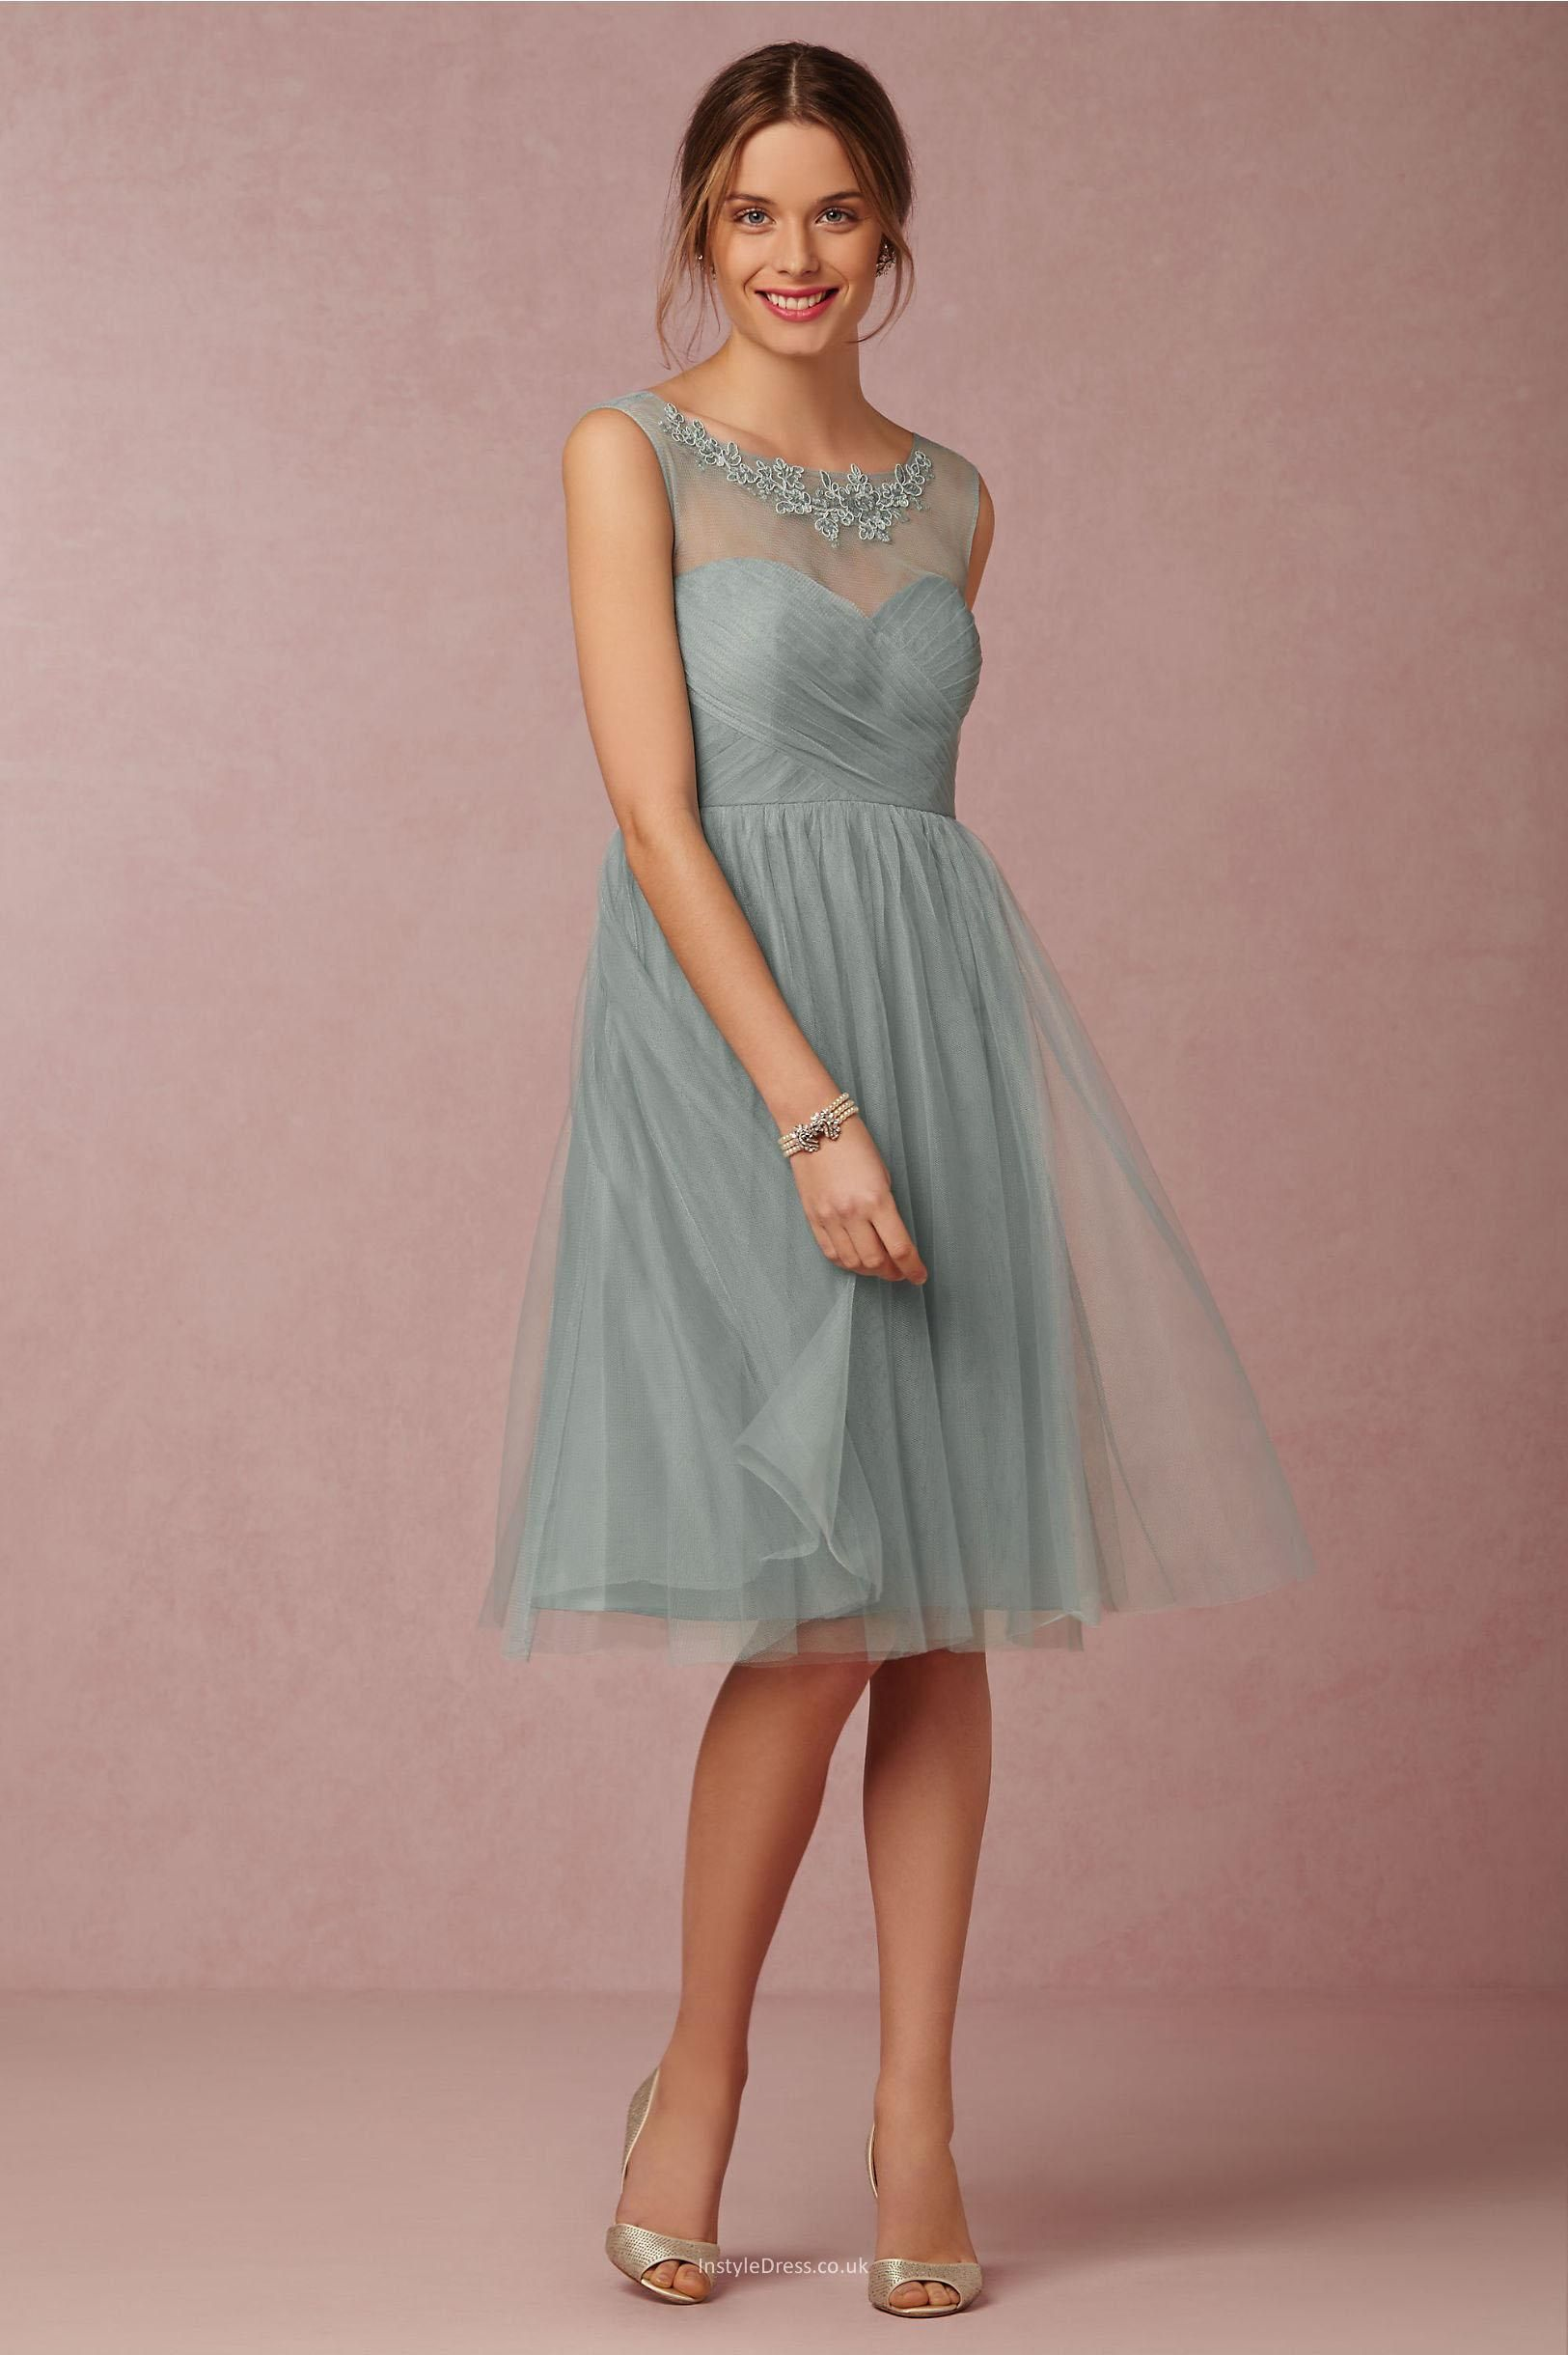 Illusion neckline simple short knee length tulle bridesmaid dress illusion neckline simple short knee length tulle bridesmaid dress ombrellifo Image collections